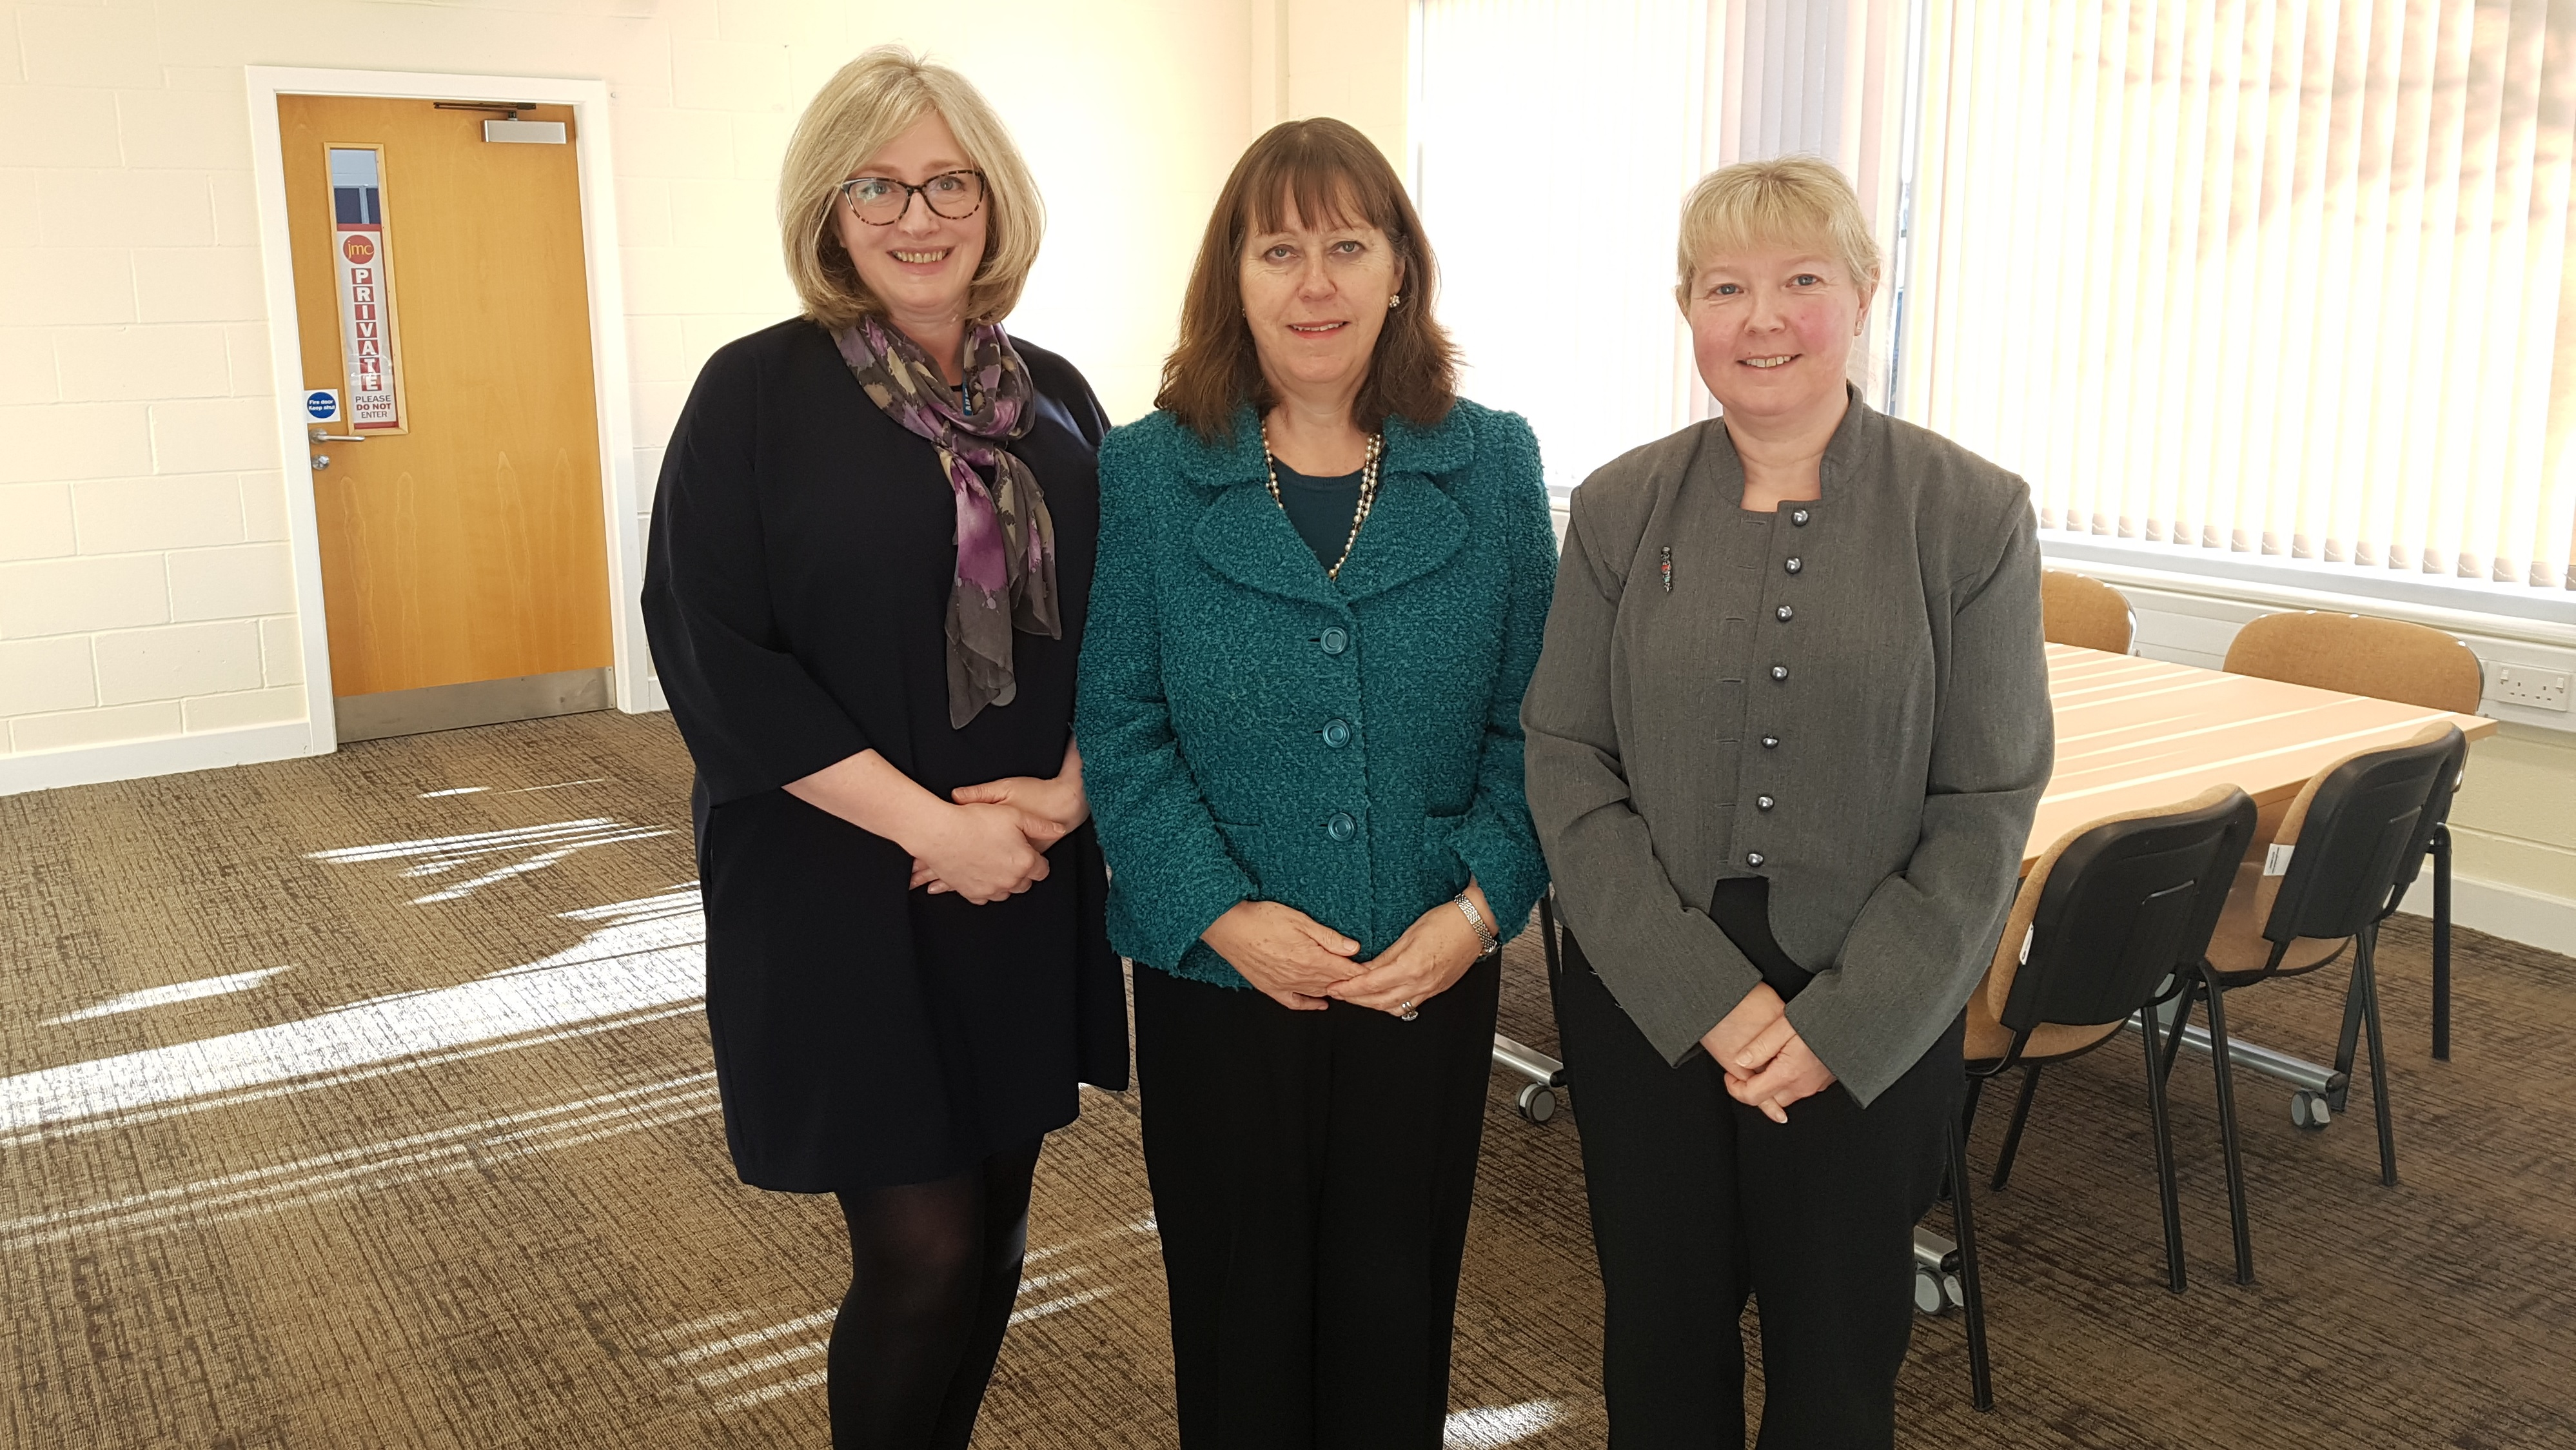 Left to right Dr Julia Higgins, Edwina Grant OBE and Hilary Fordham Chief Executive Officer, Morecambe Bay CCG